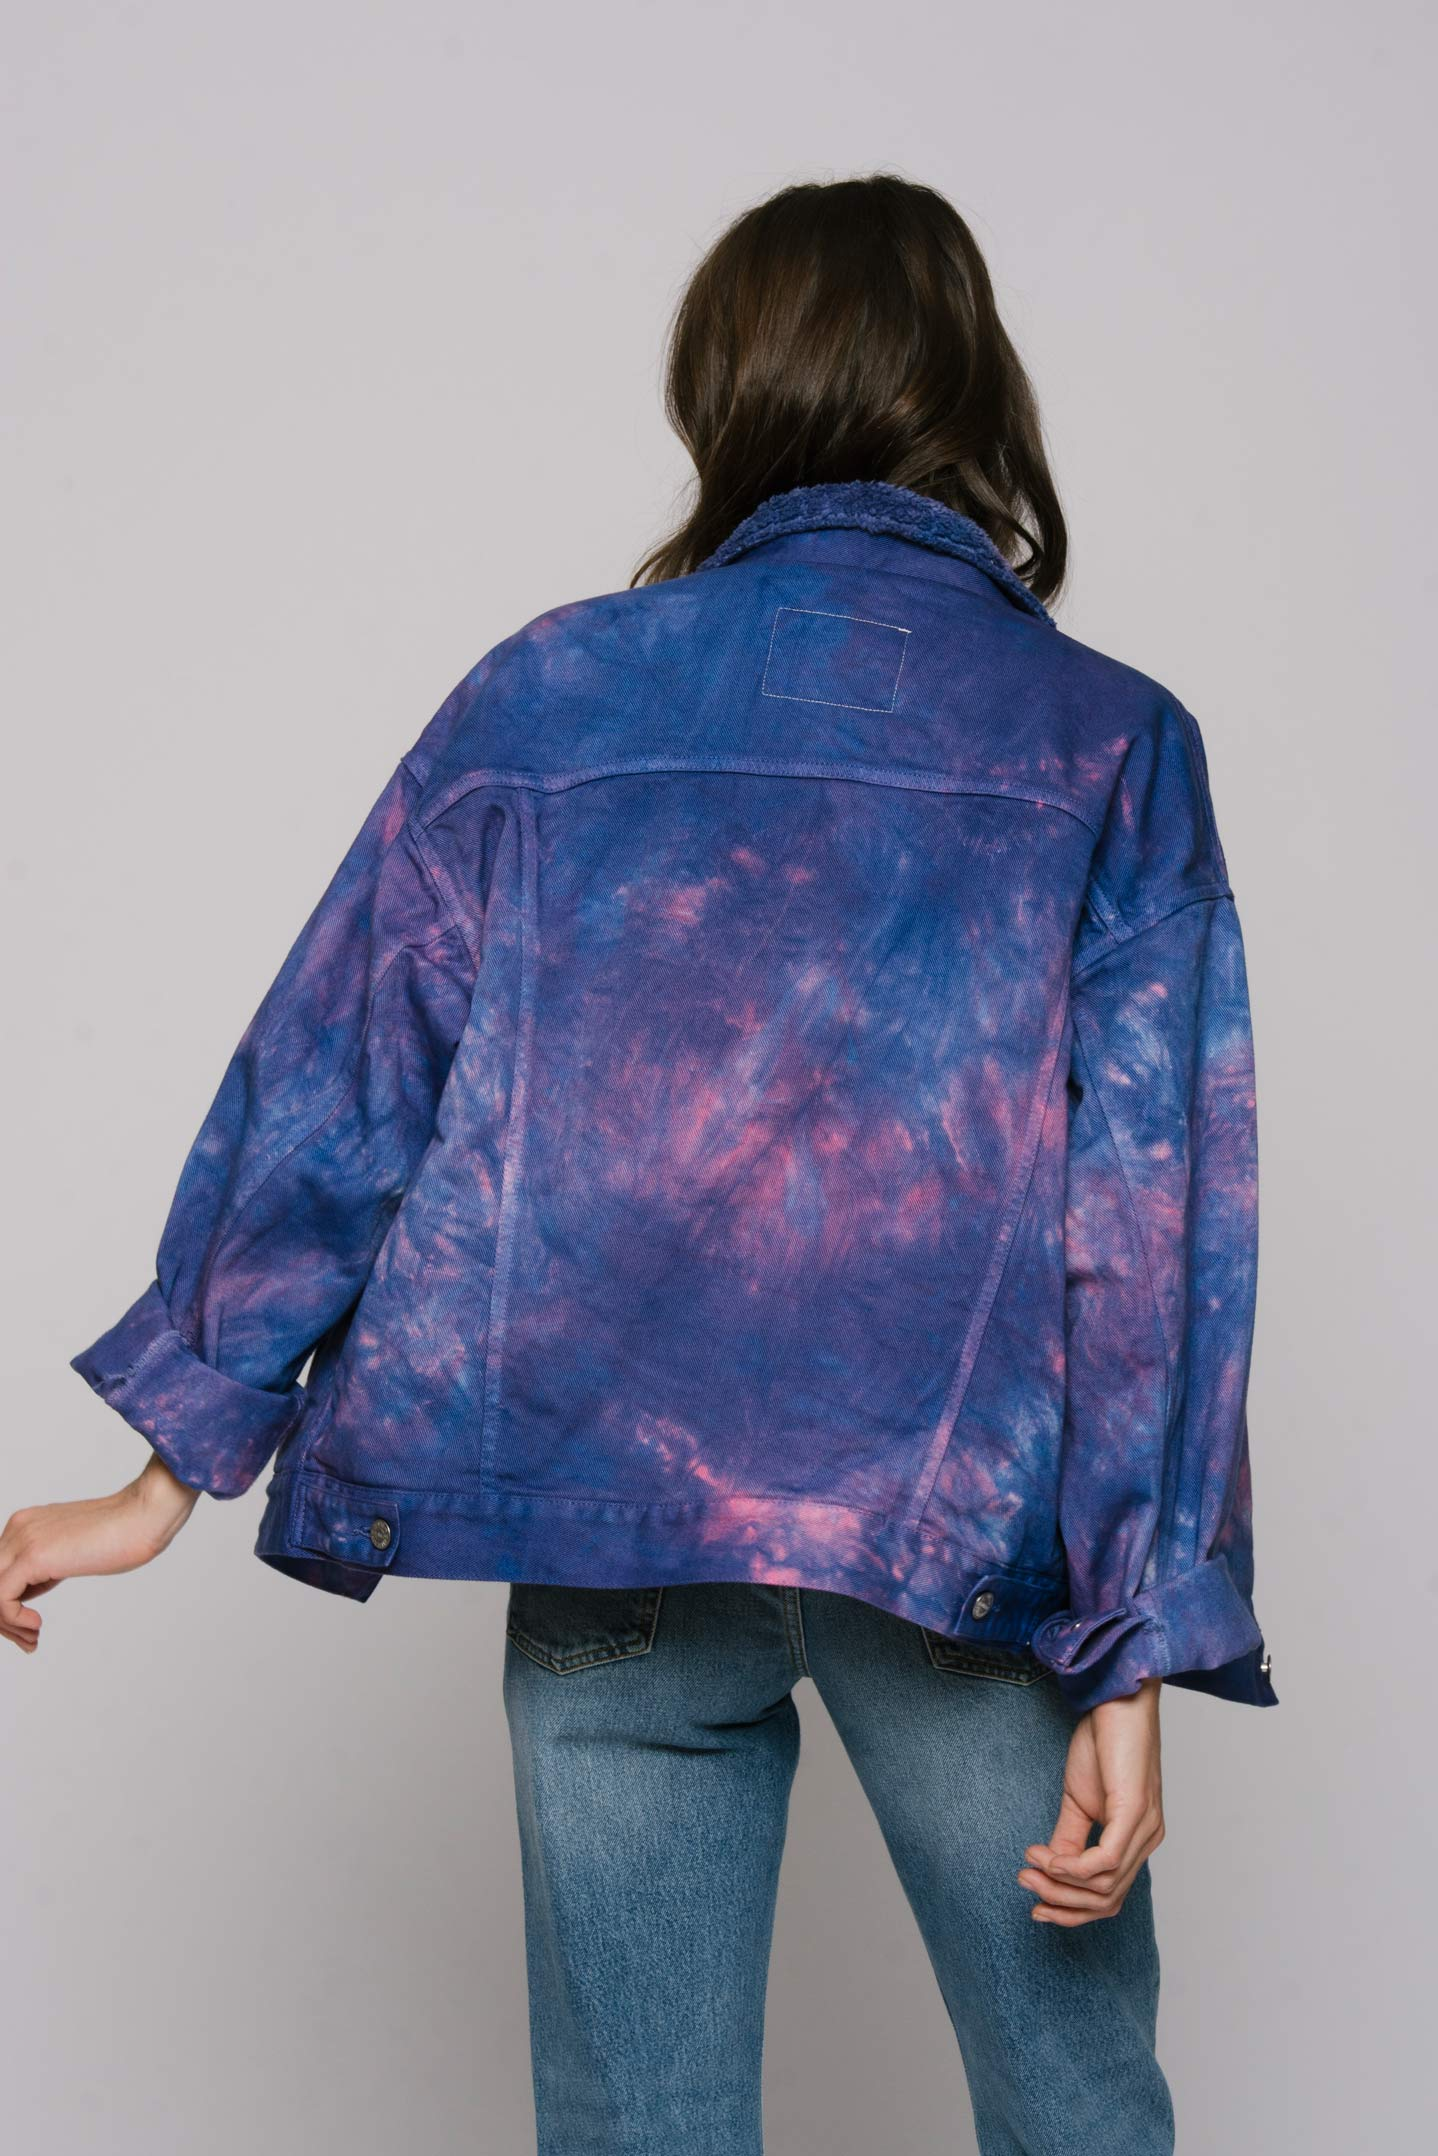 The Shearline Jacket The Cosmic Ray